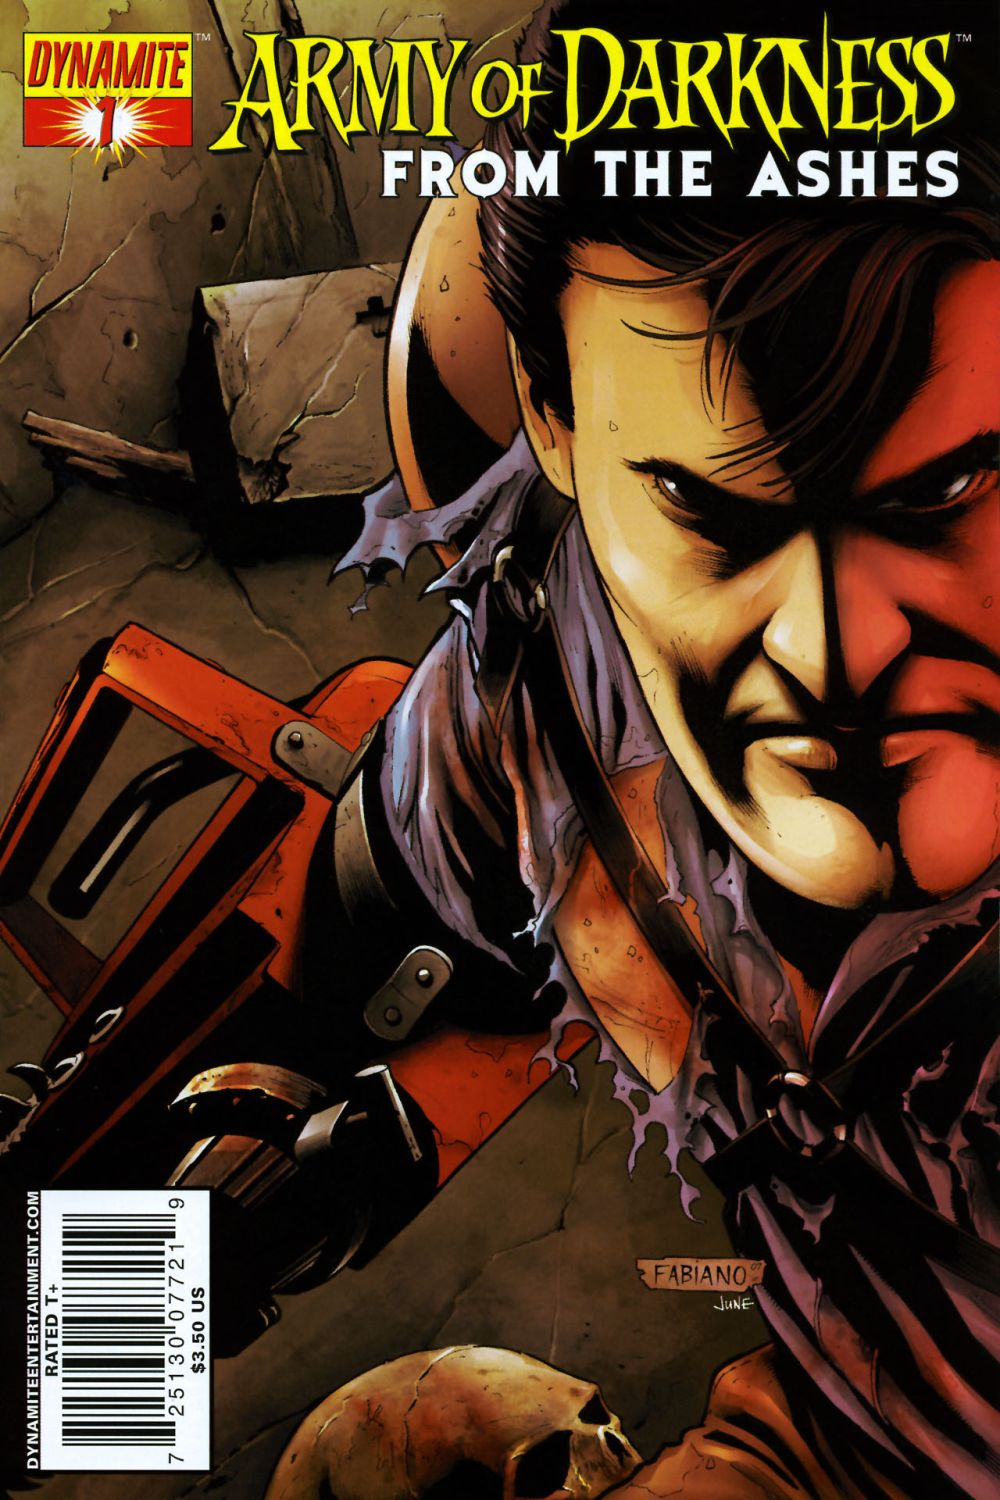 Army Of Darkness- From The Ashes [Dynamite] Mini 1 0001.jpg